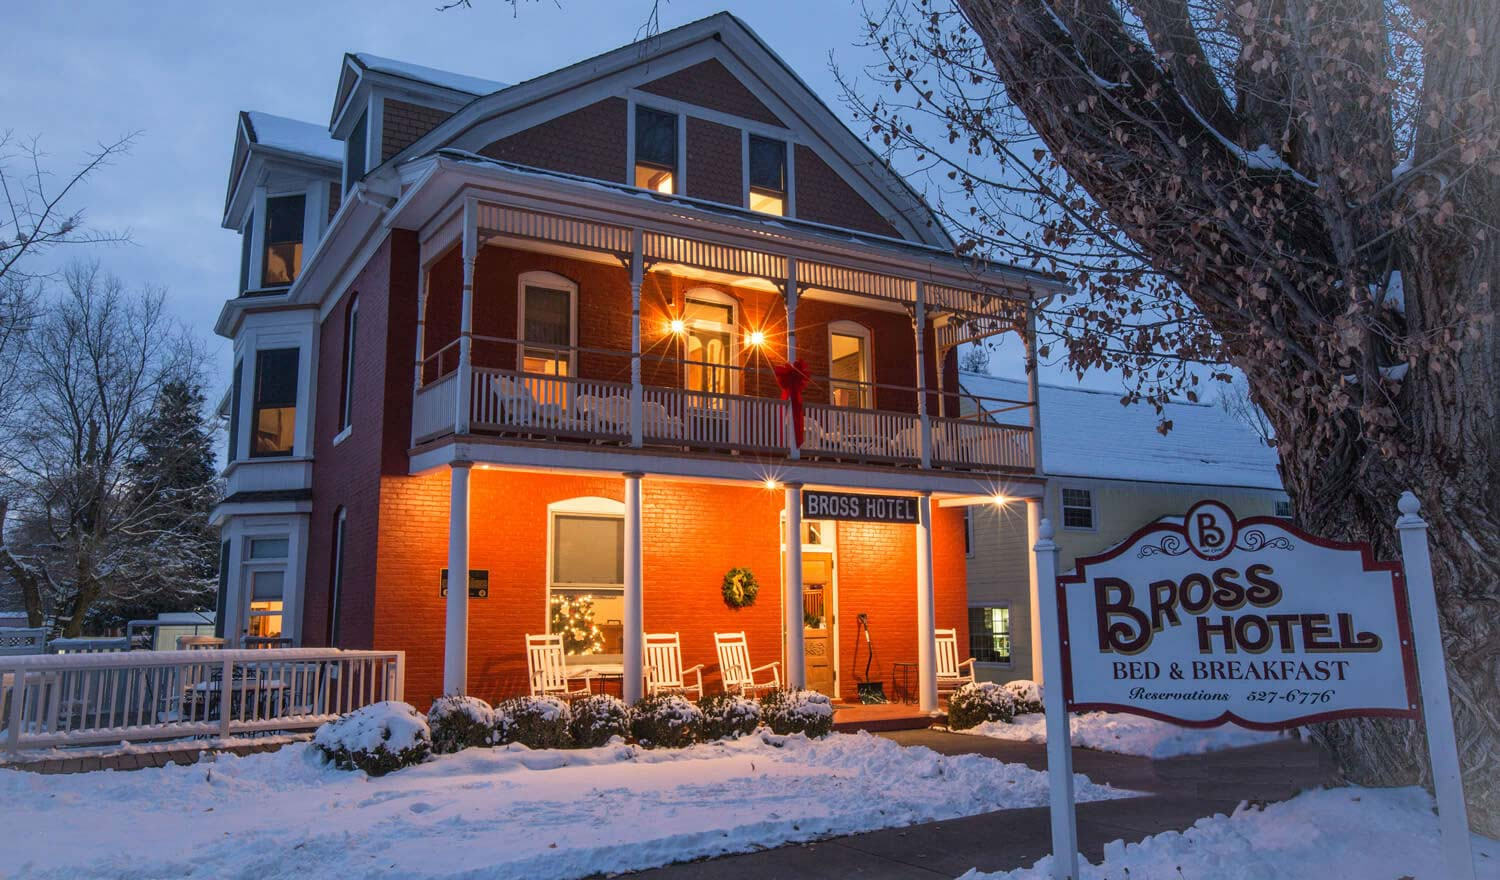 A house covered in snow at Bross Hotel Bed & Breakfast.